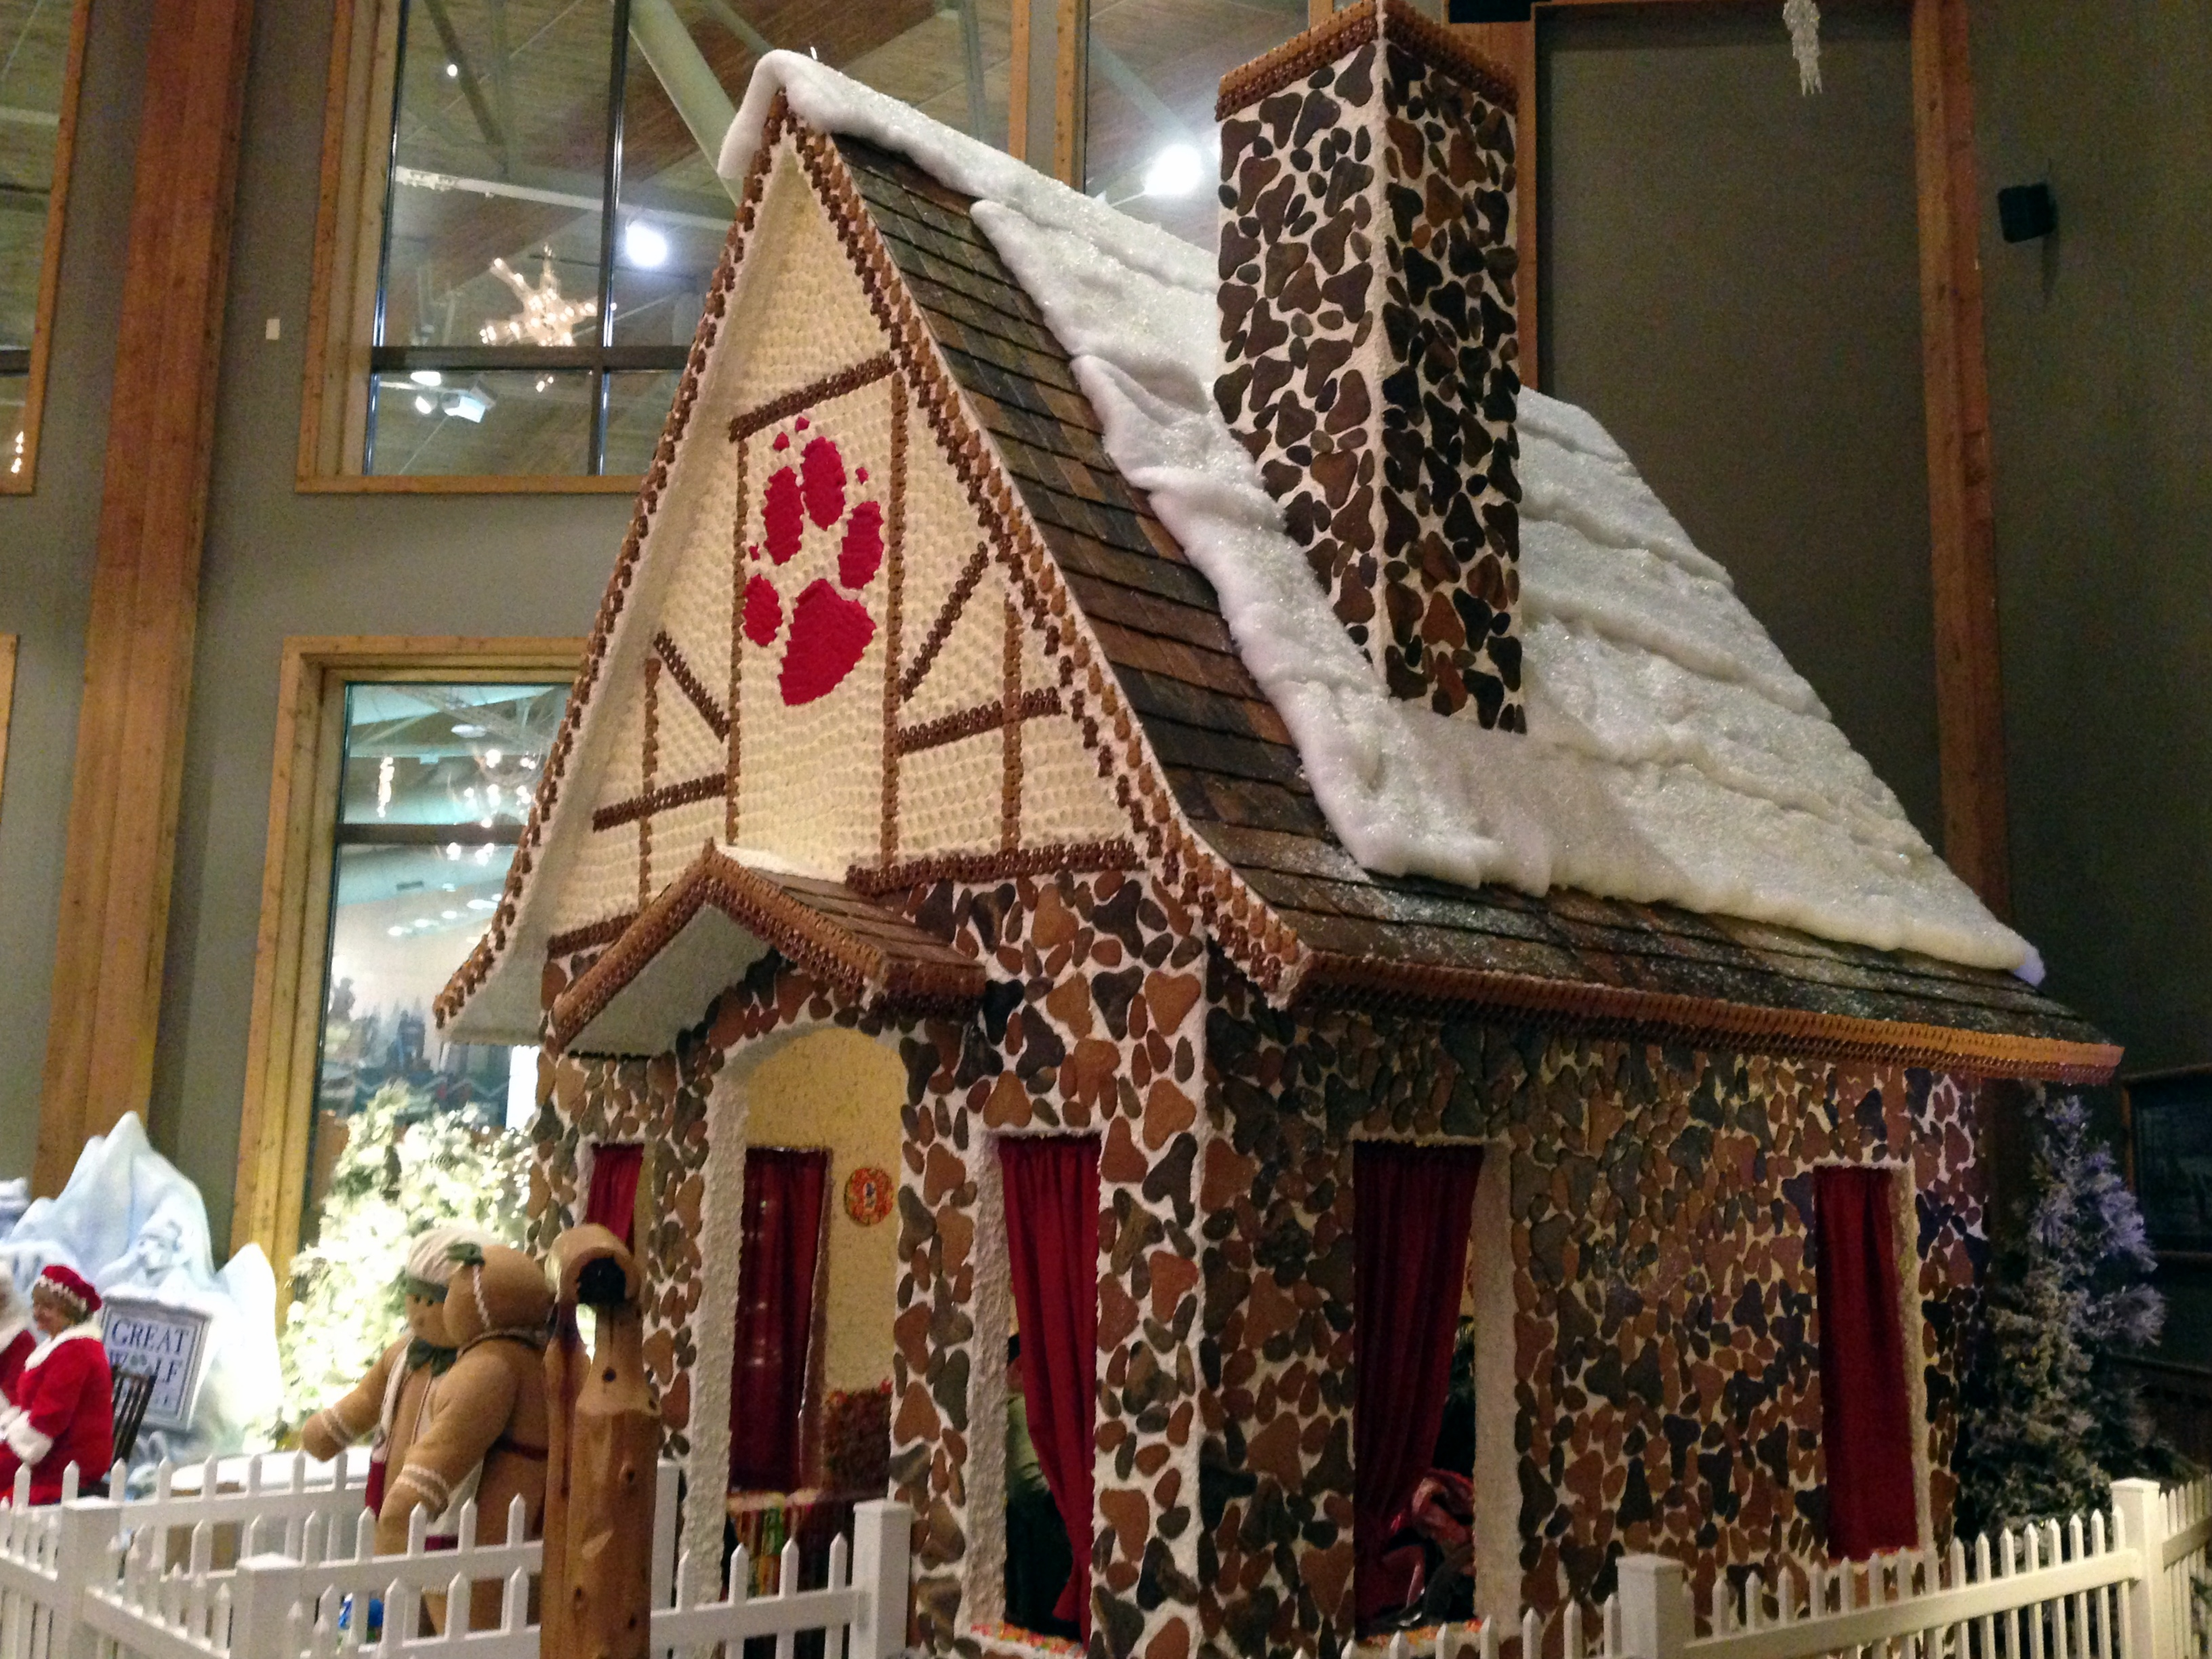 Swell This Amazing Gingerbread House Is Big Enough For A Family To Download Free Architecture Designs Rallybritishbridgeorg